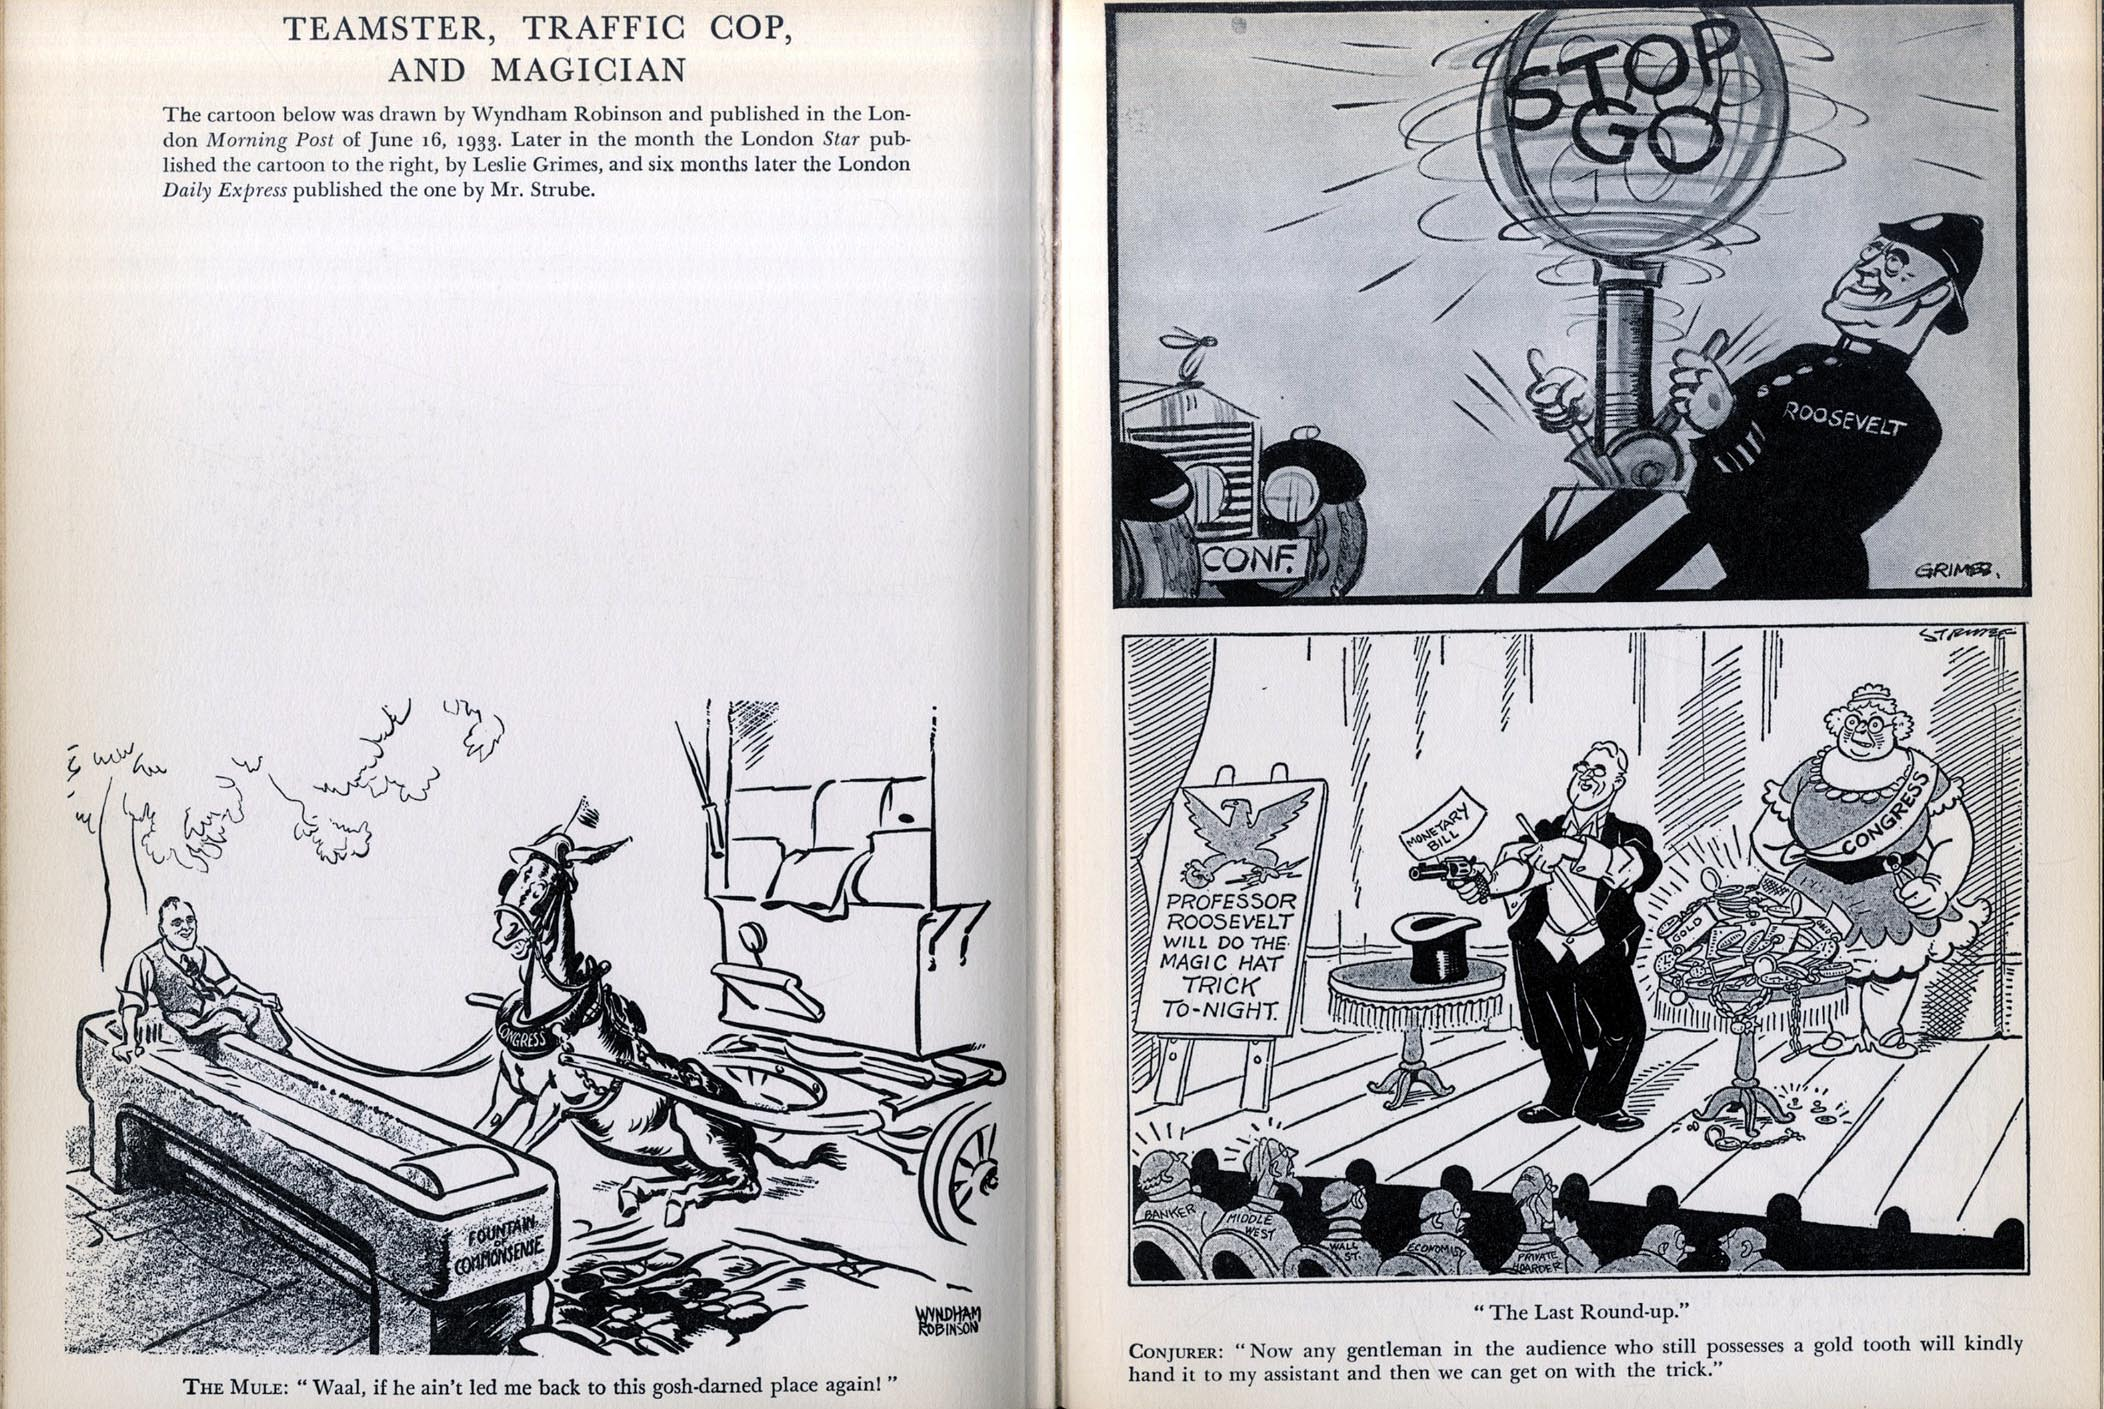 Franklin Delano Roosevelt cartoons and caricatures